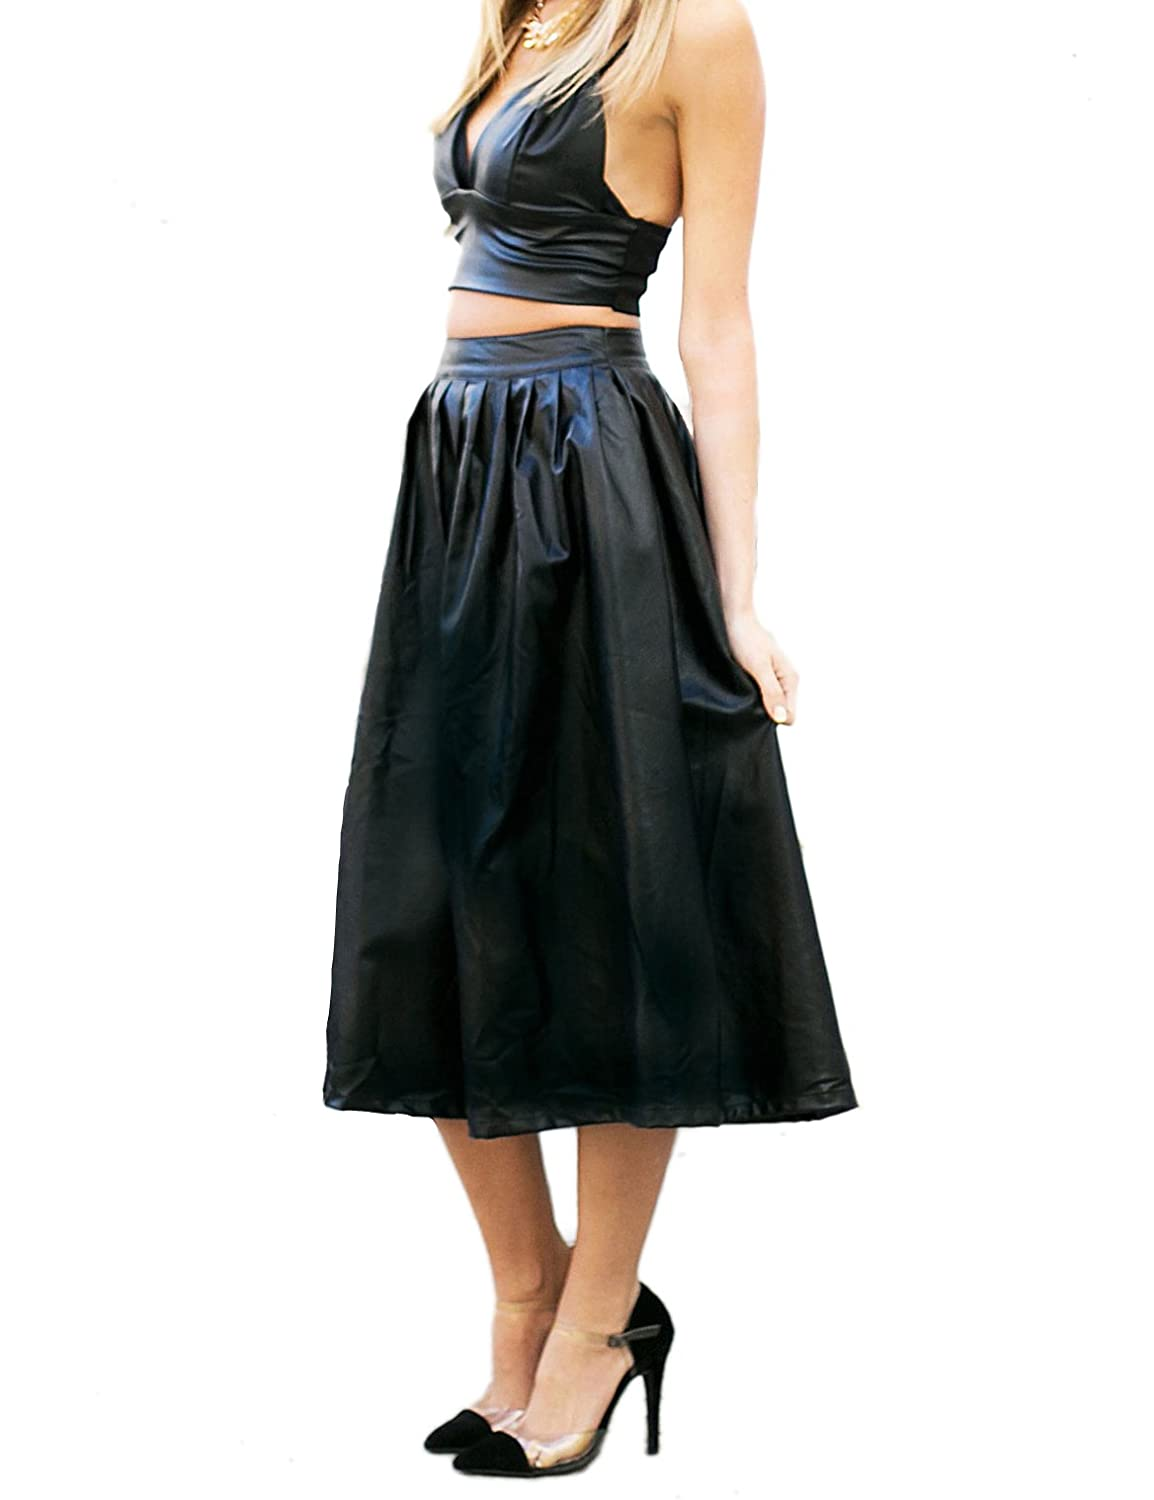 Aelegantmis Women's Faux Leather A-Line High Waist Pleated Midi Skater Skirt